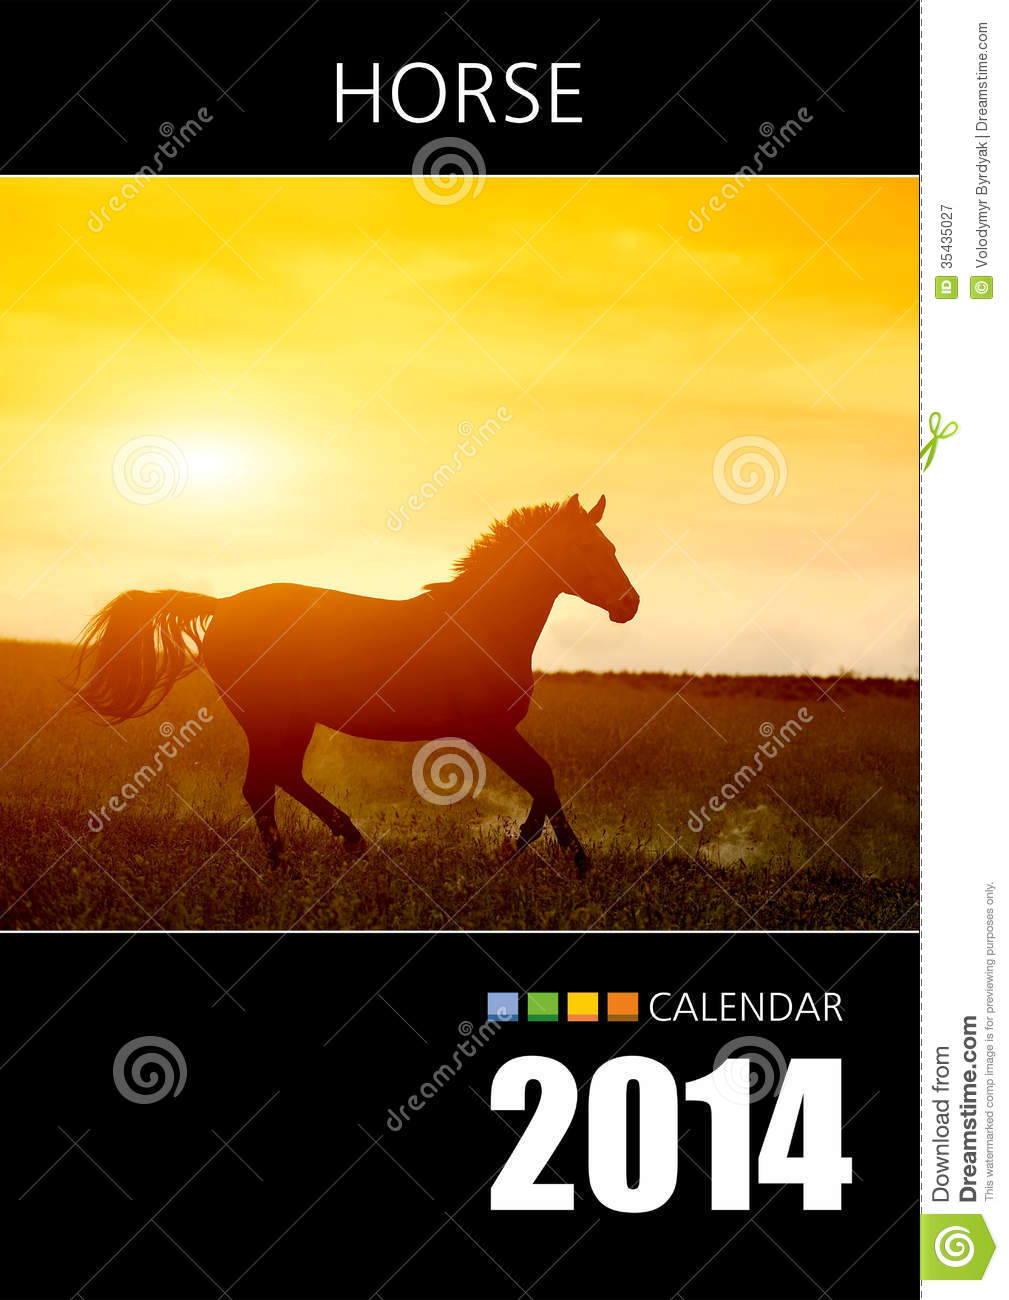 Calendar Cover Design 2014 : Calendar stock image of paper planner